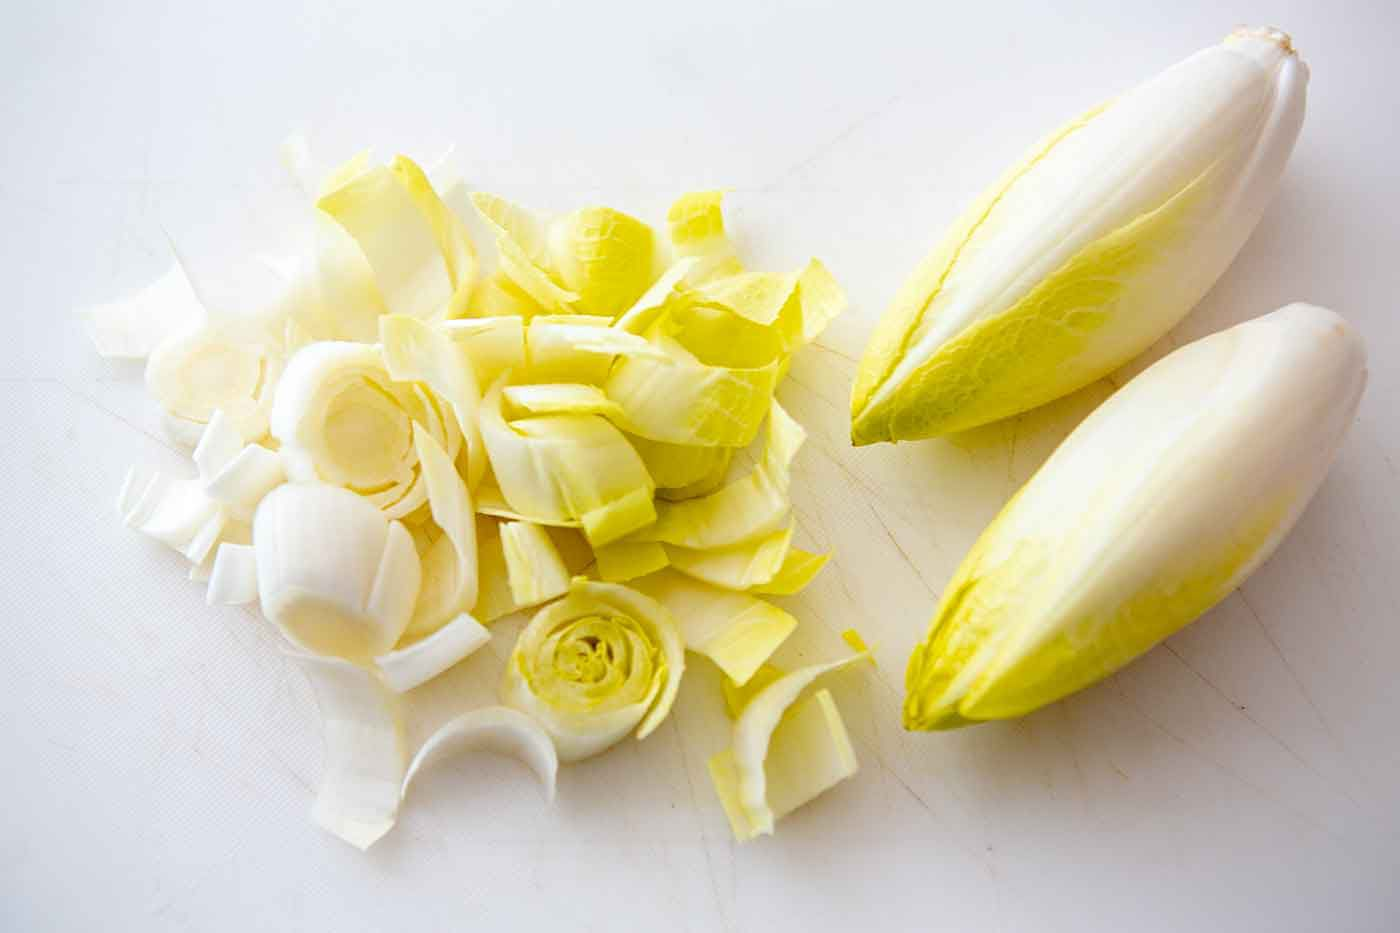 chopped and whole endive